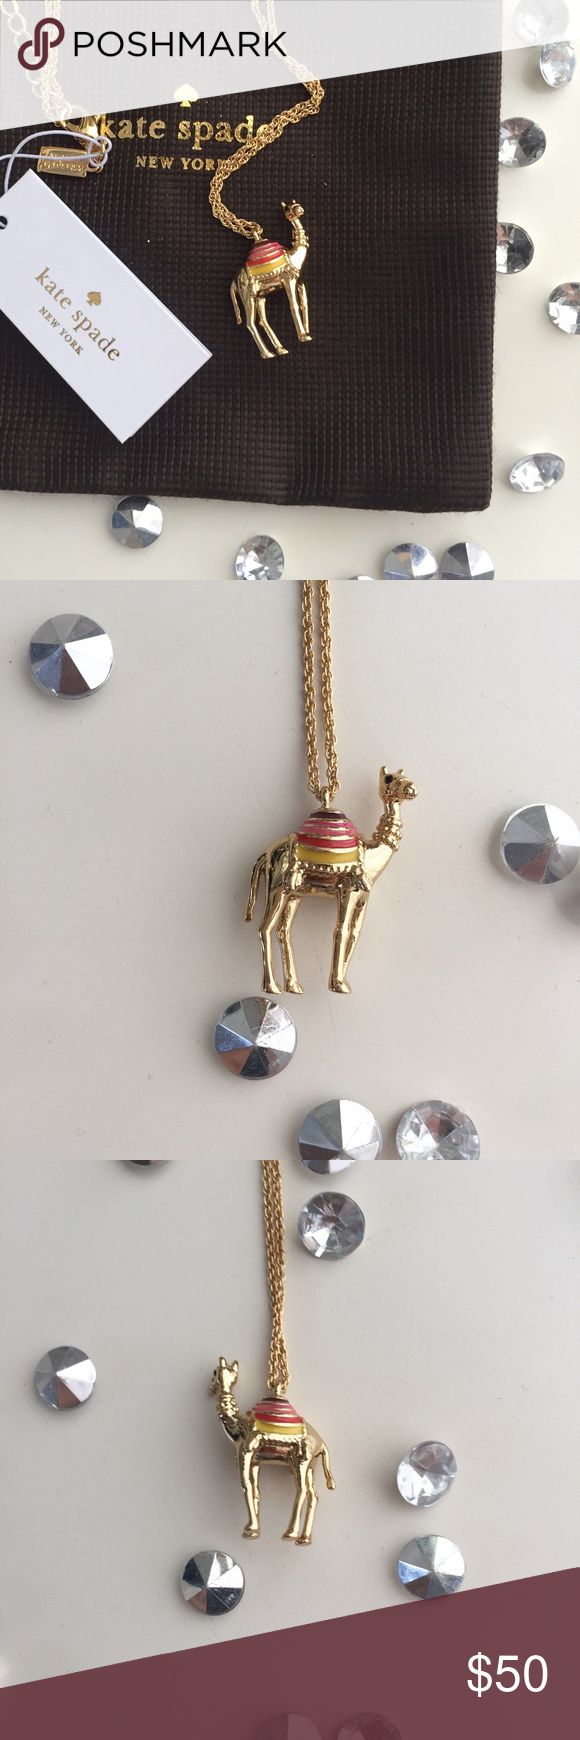 "Kate Spade Camel Necklace So cute! From the Spice Things Up line, this is the camel necklace. Small enough for wear any time of day, it's an adorable piece to pair with an outfit! 18"" chain with option 3"" adjustable additional drop. Brand new with dust bag! kate spade Jewelry Necklaces"